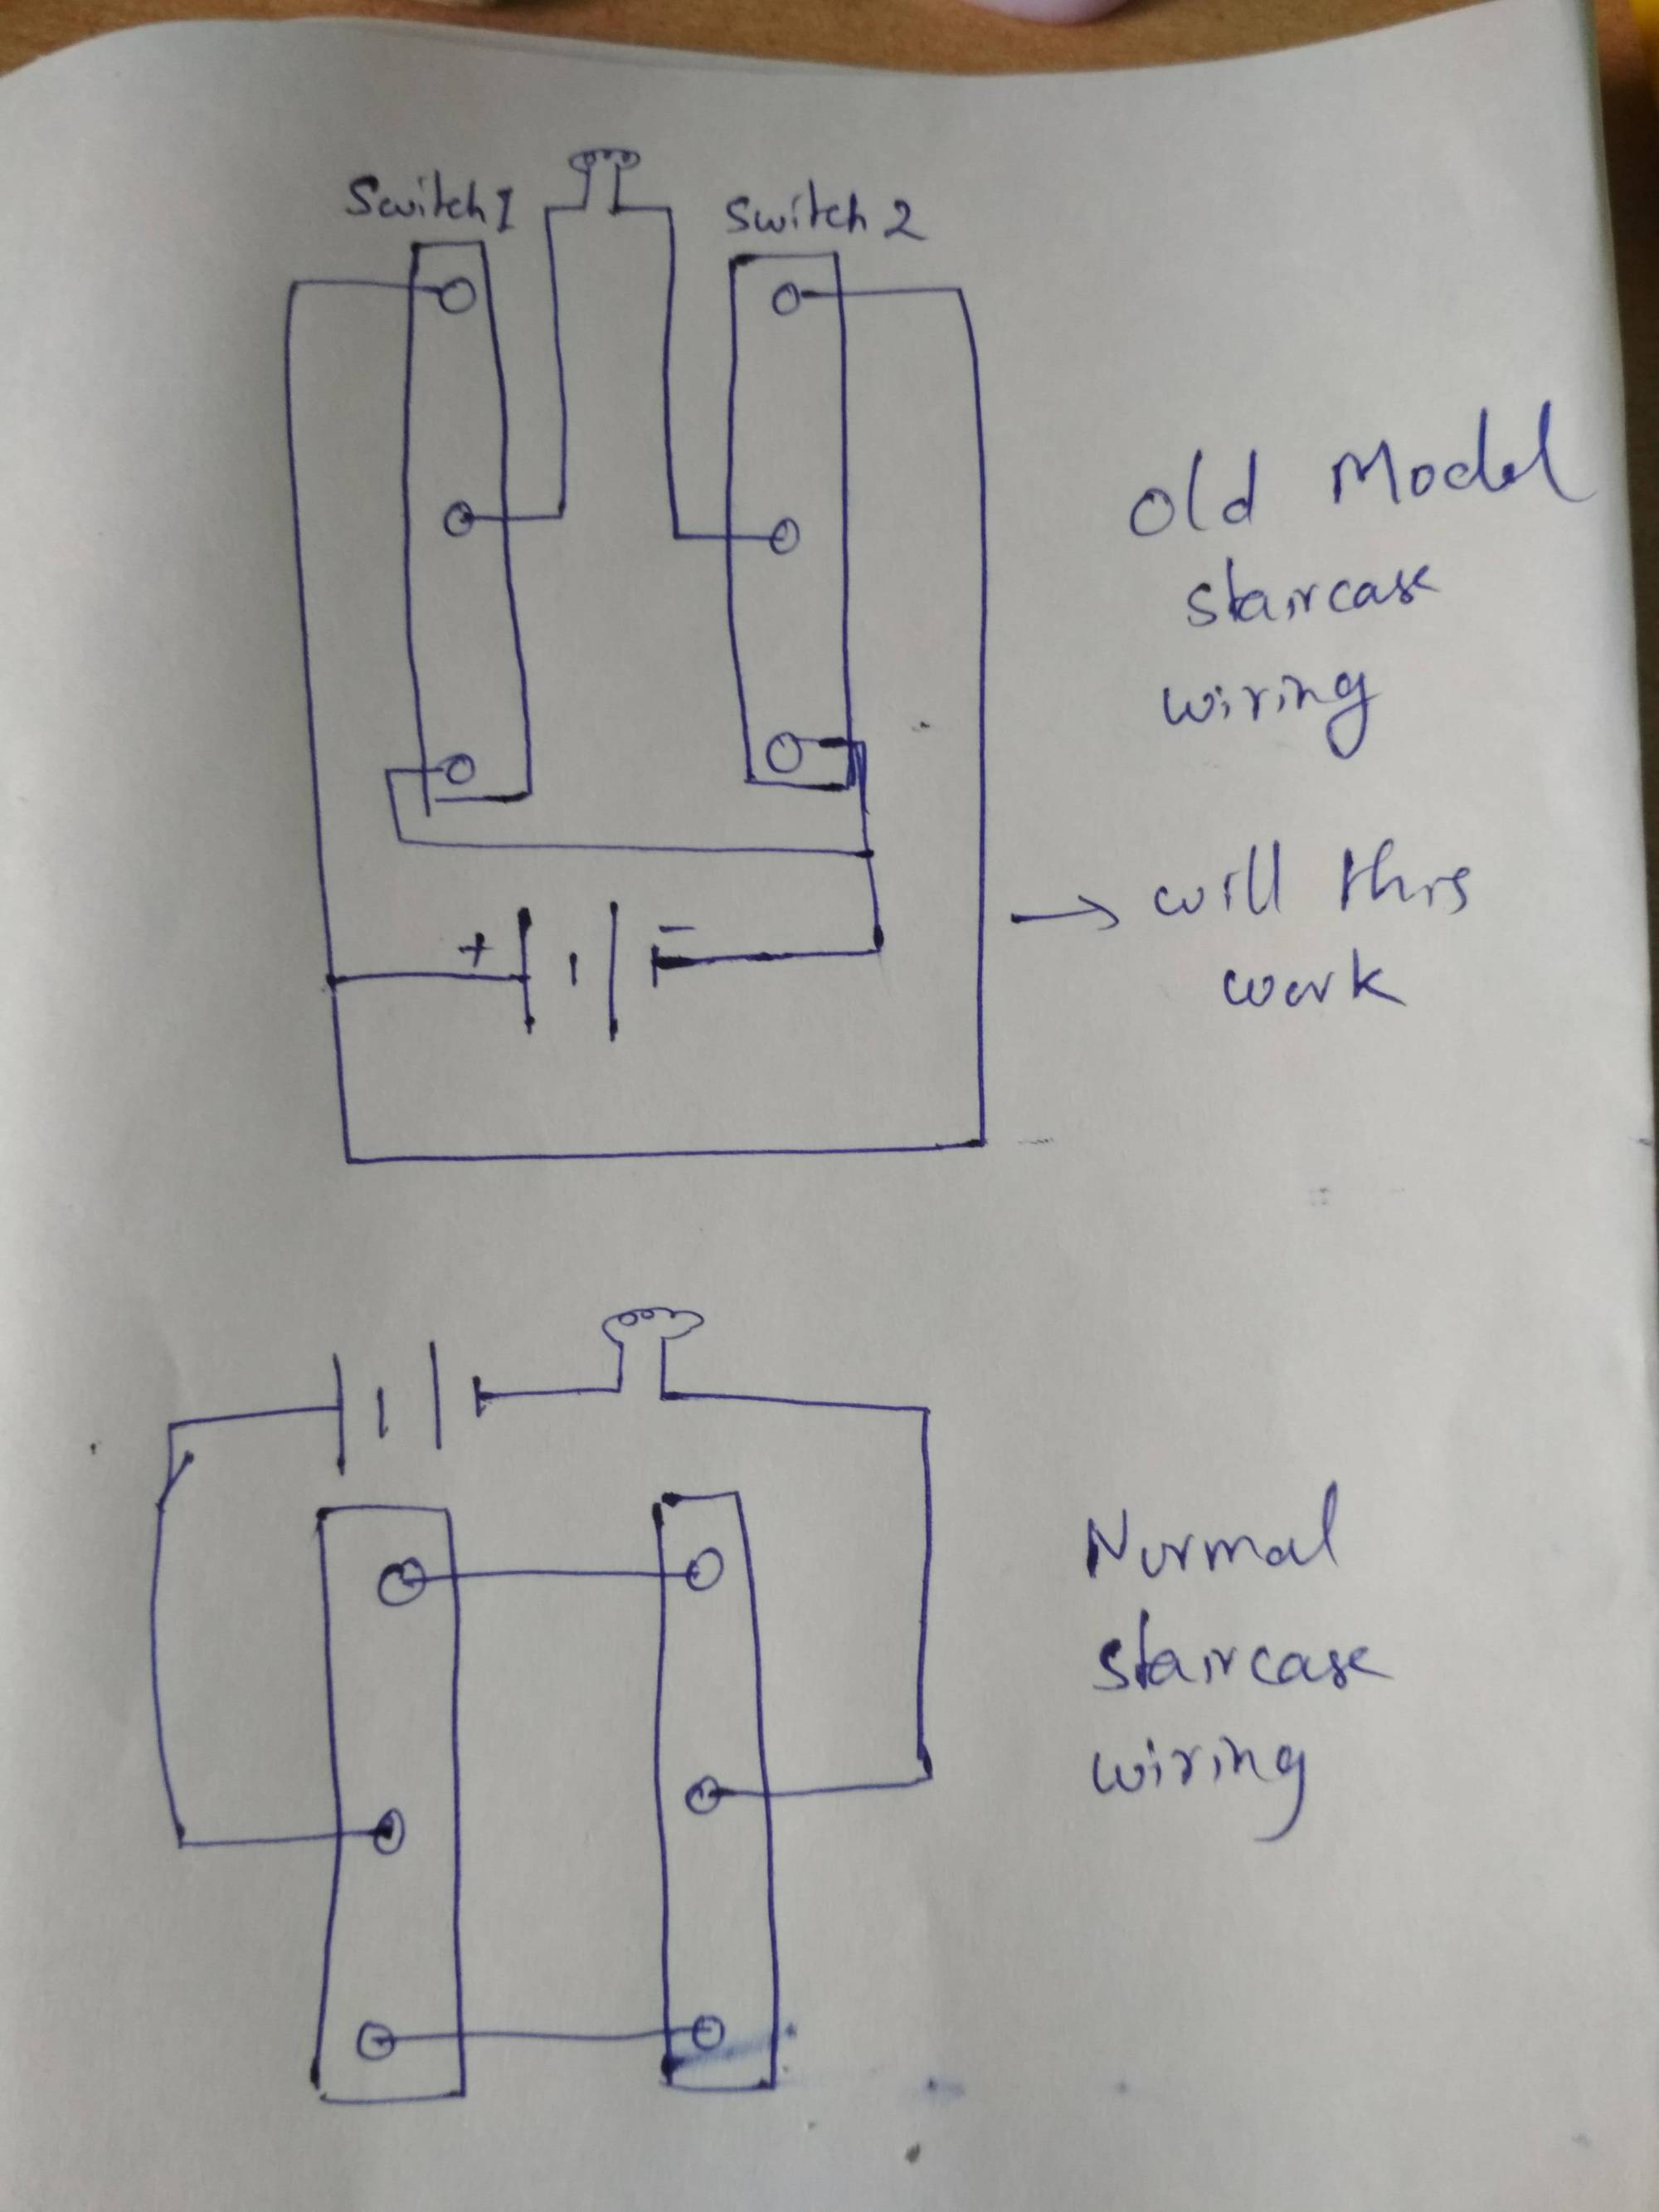 hight resolution of old model and normal model staircase wiring